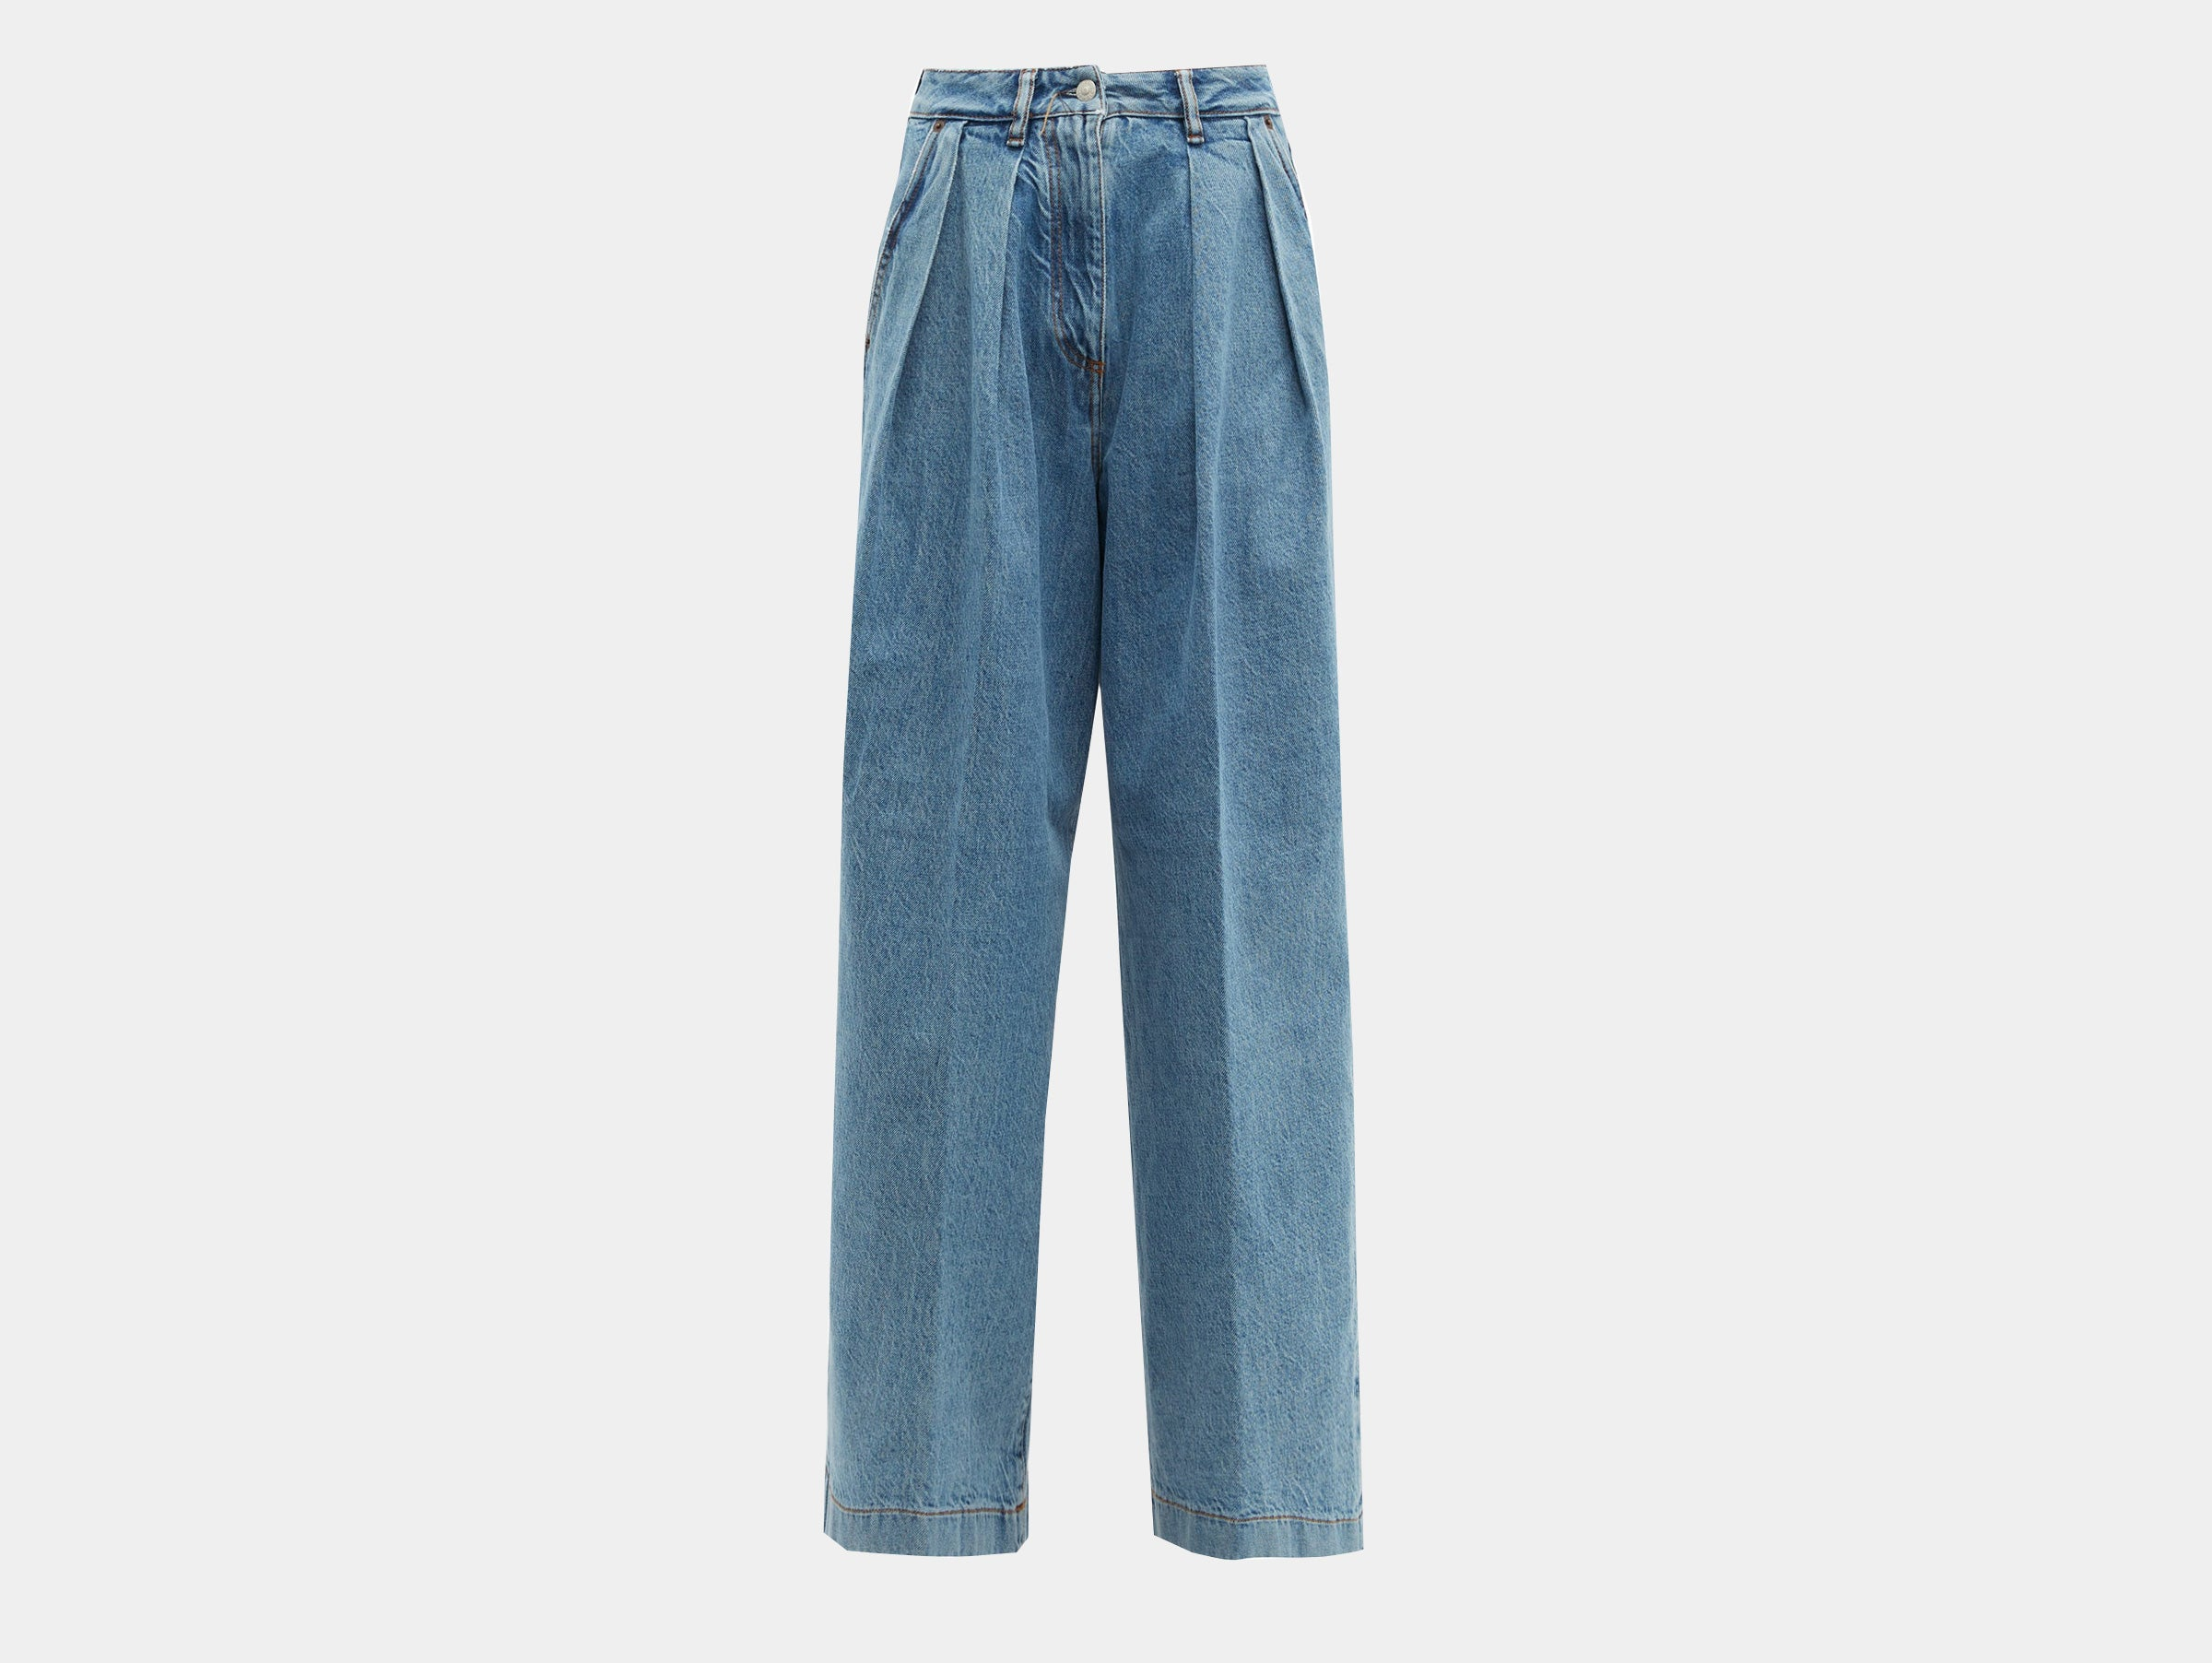 Acne Studios - Pakita high rise pleated wide-leg blue denim jeans